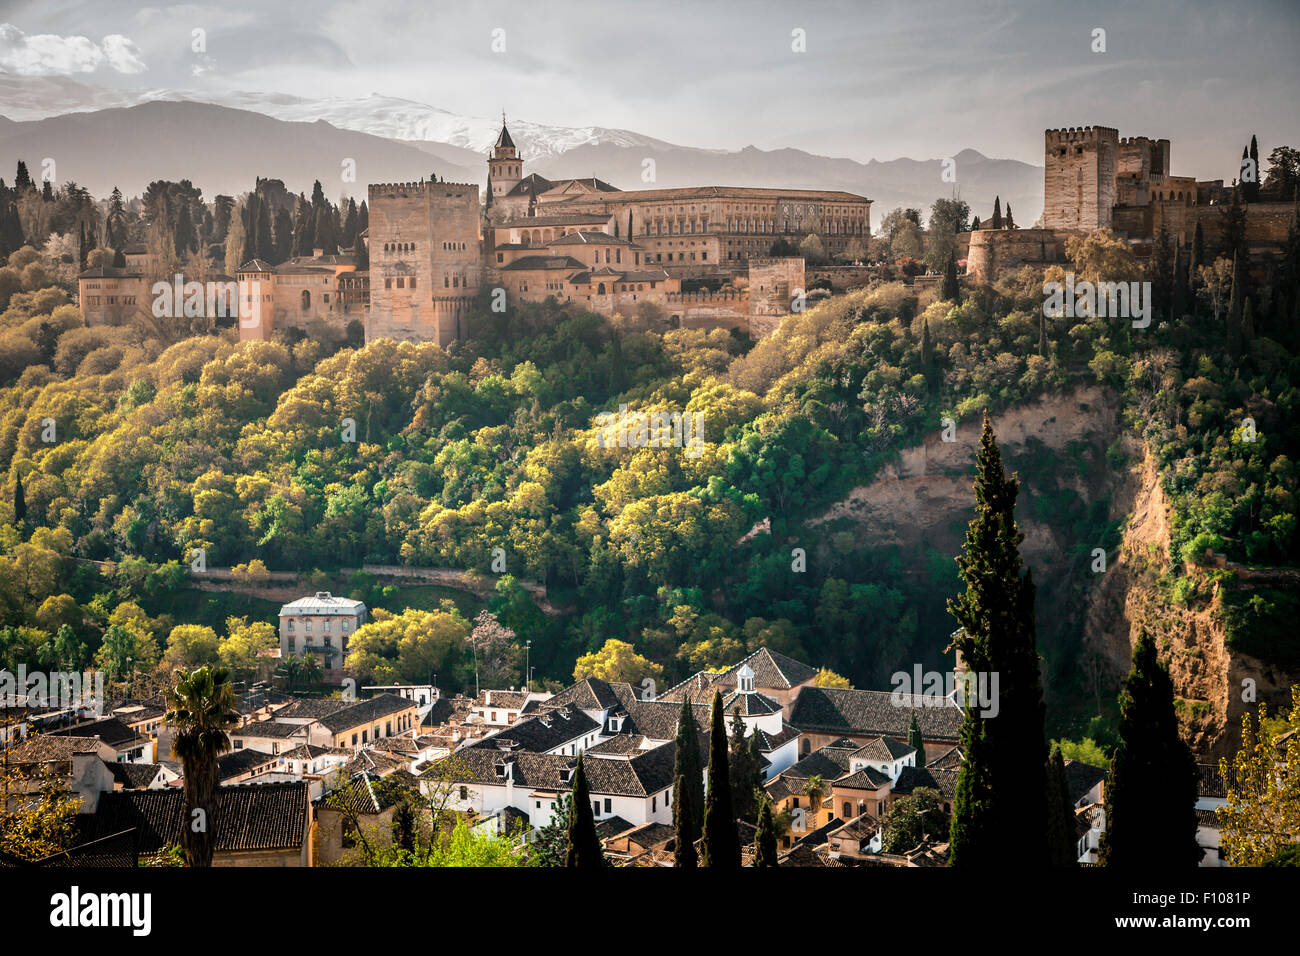 View of The Alhambra from Albaicin quarter, mirador de San Nicolas, Granada, Andalusia, Spain - Stock Image